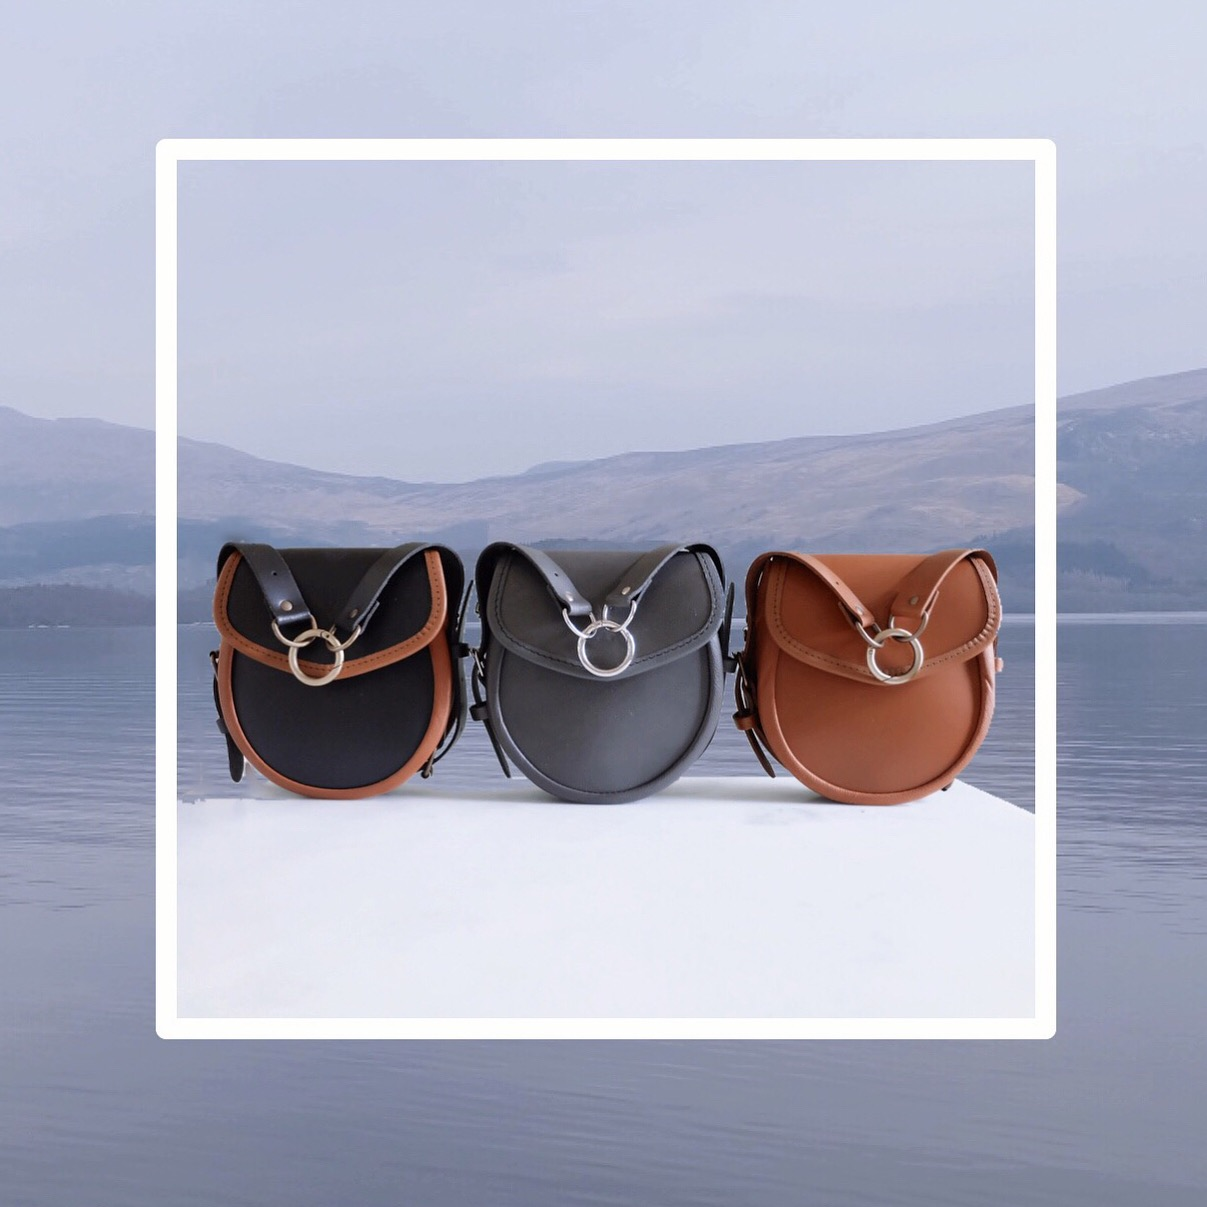 The new Lomond bags in Raven & London Tan, Sky Grey & London Tan